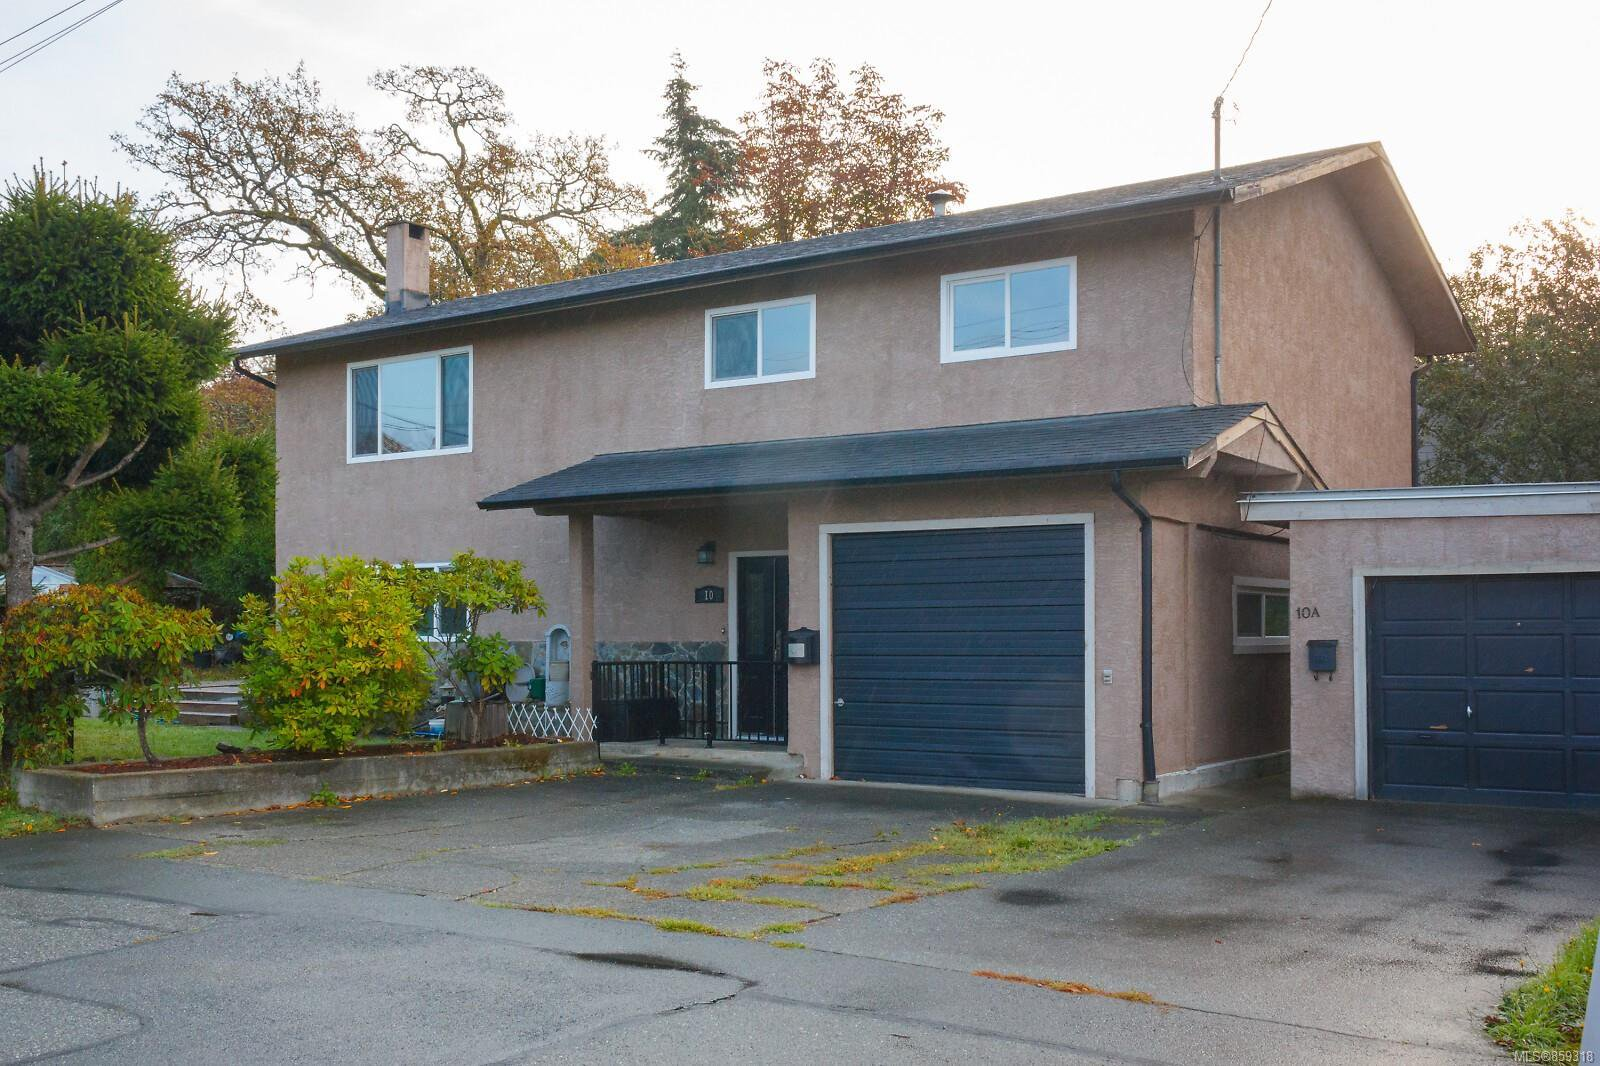 Main Photo: 10 Quincy St in : VR Hospital House for sale (View Royal)  : MLS®# 859318